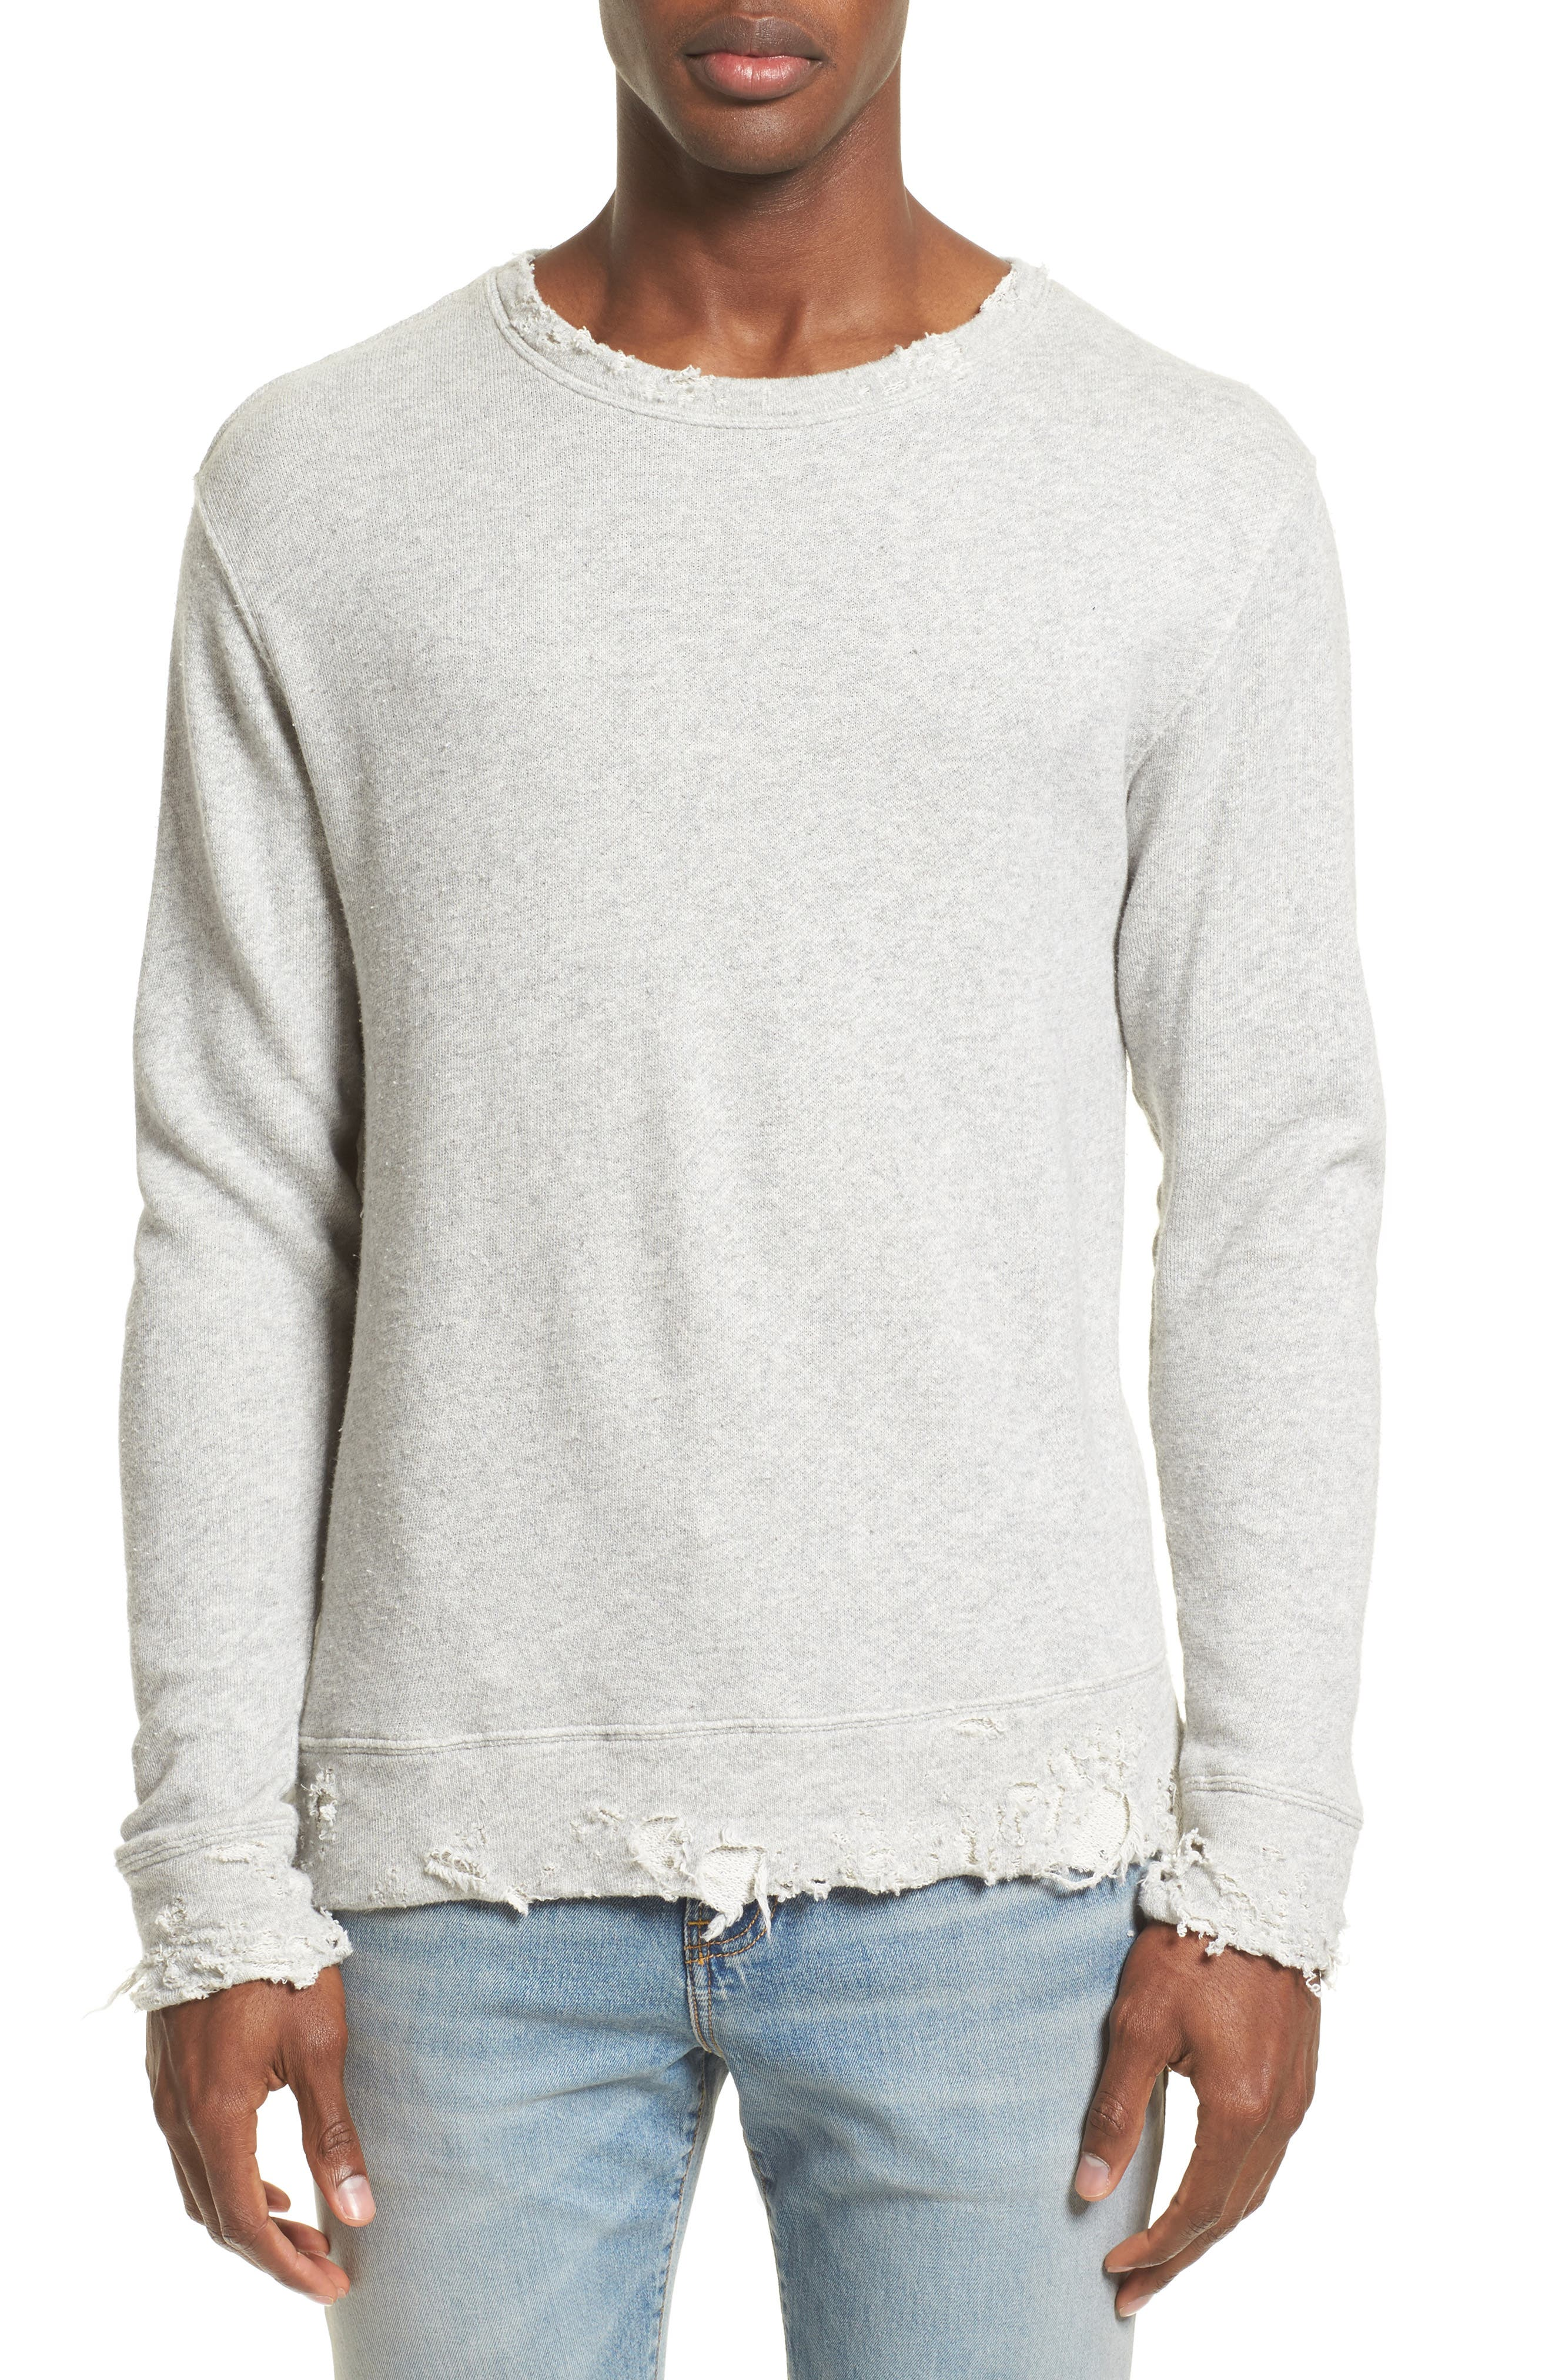 Vintage Distressed Sweatshirt,                             Main thumbnail 1, color,                             Heather Grey